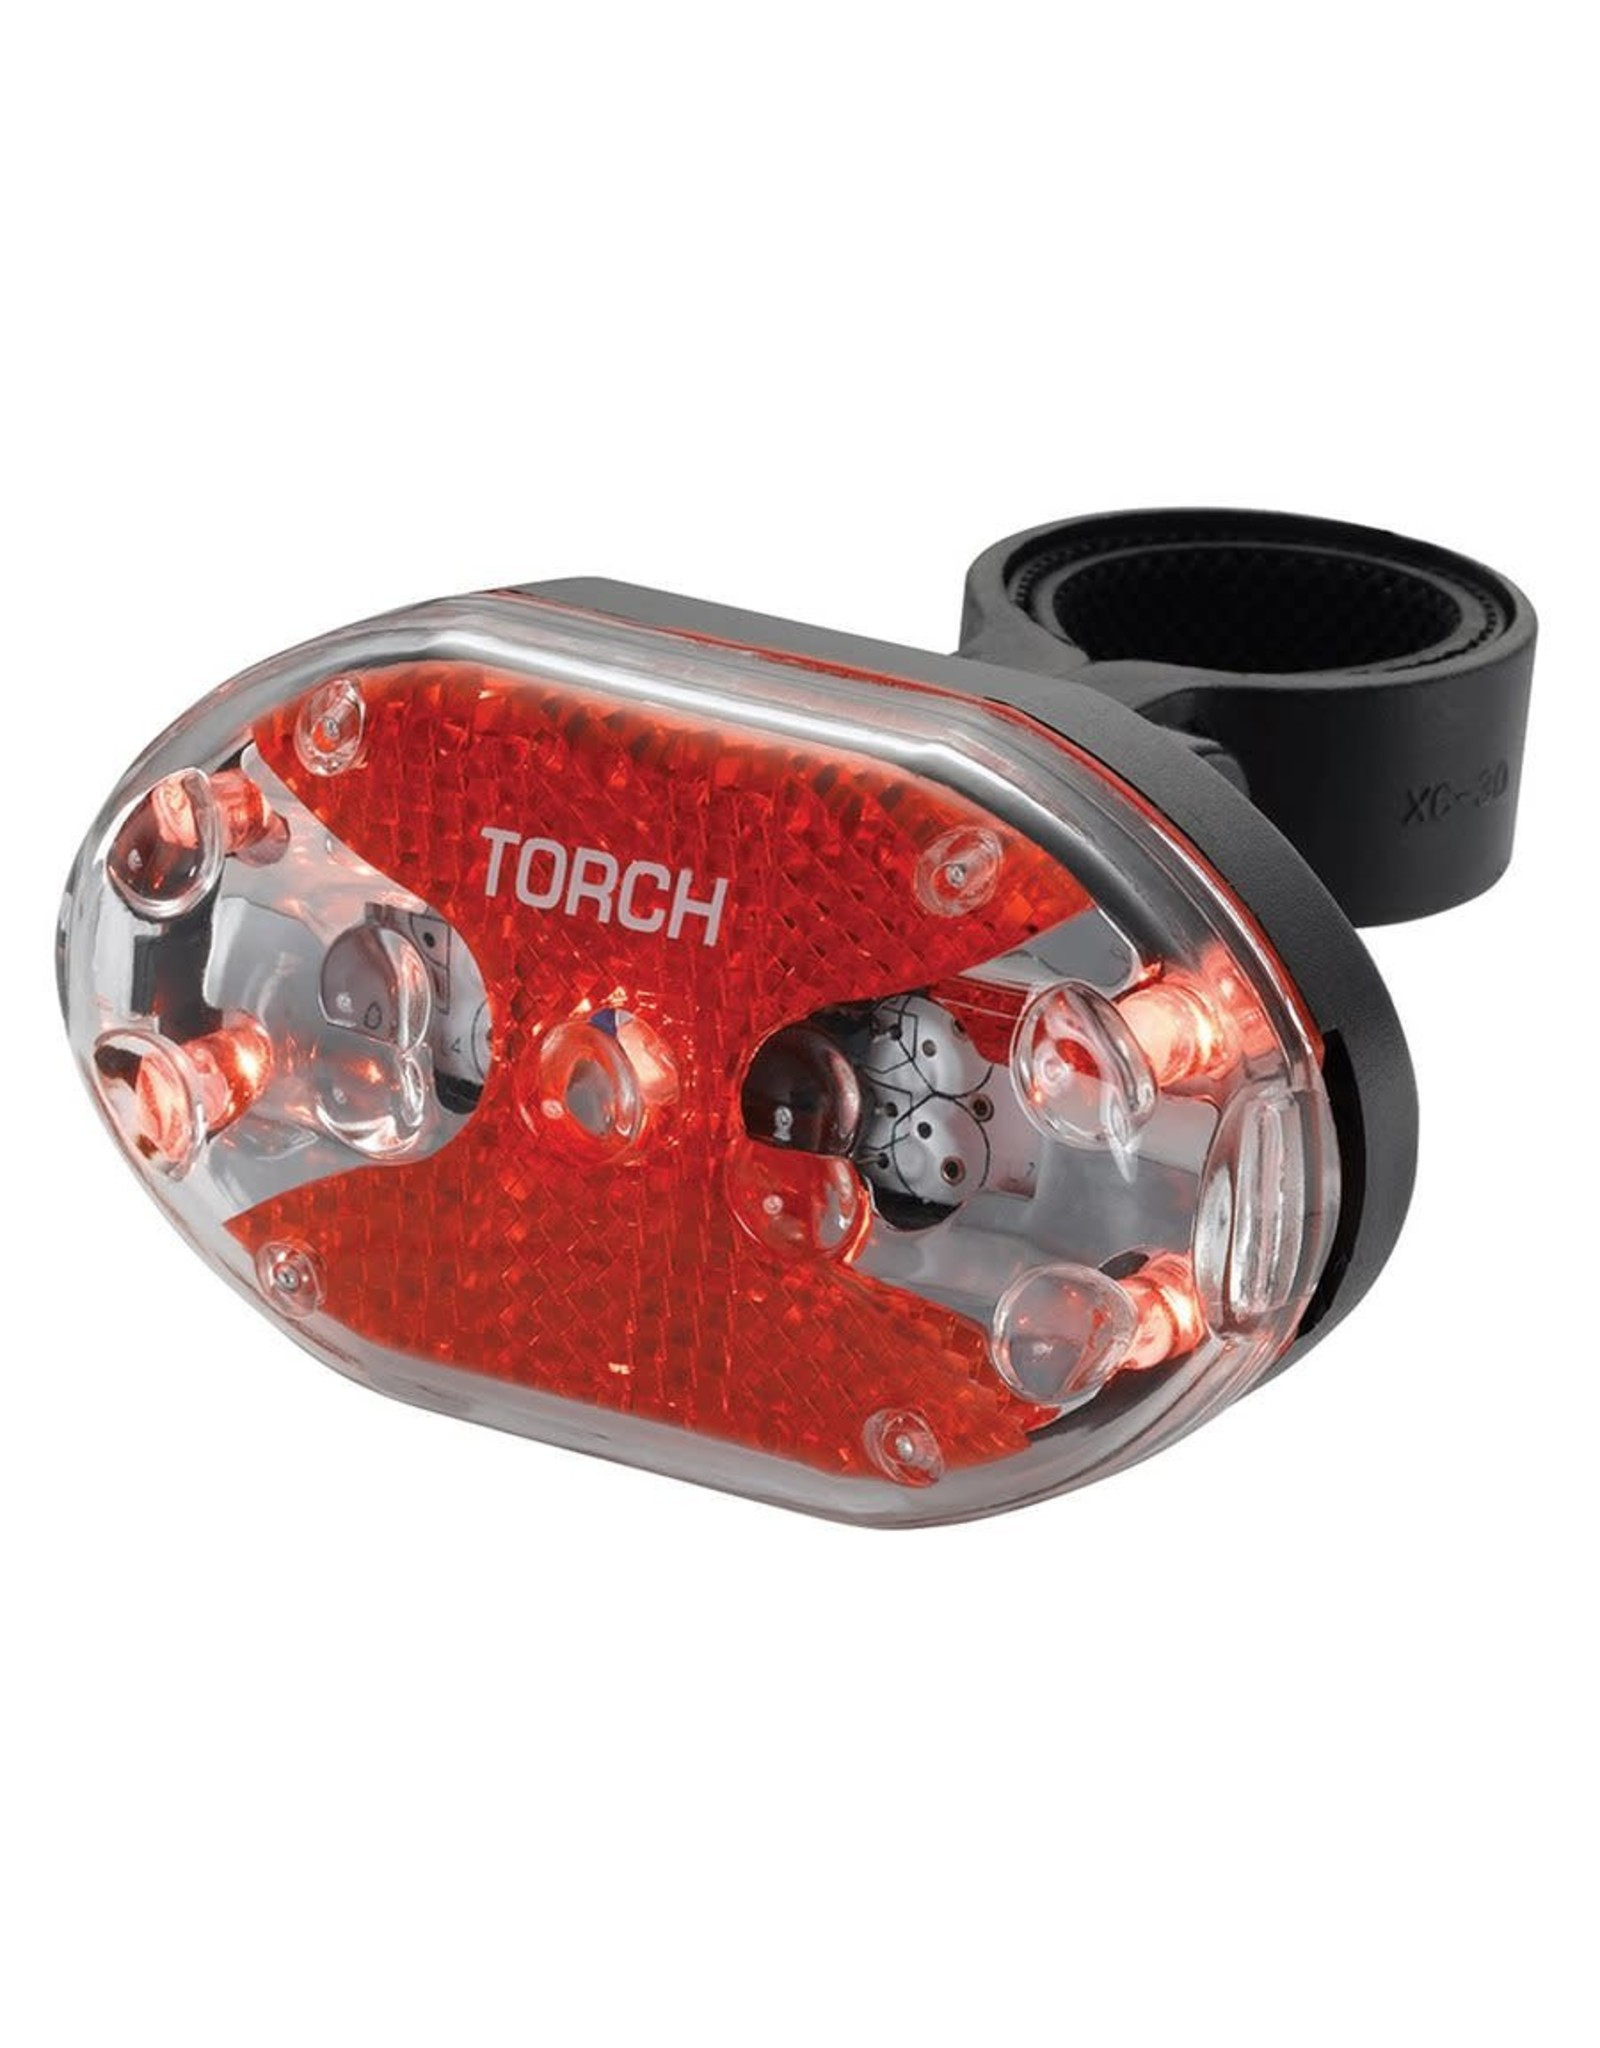 Torch Tail Bright 5X